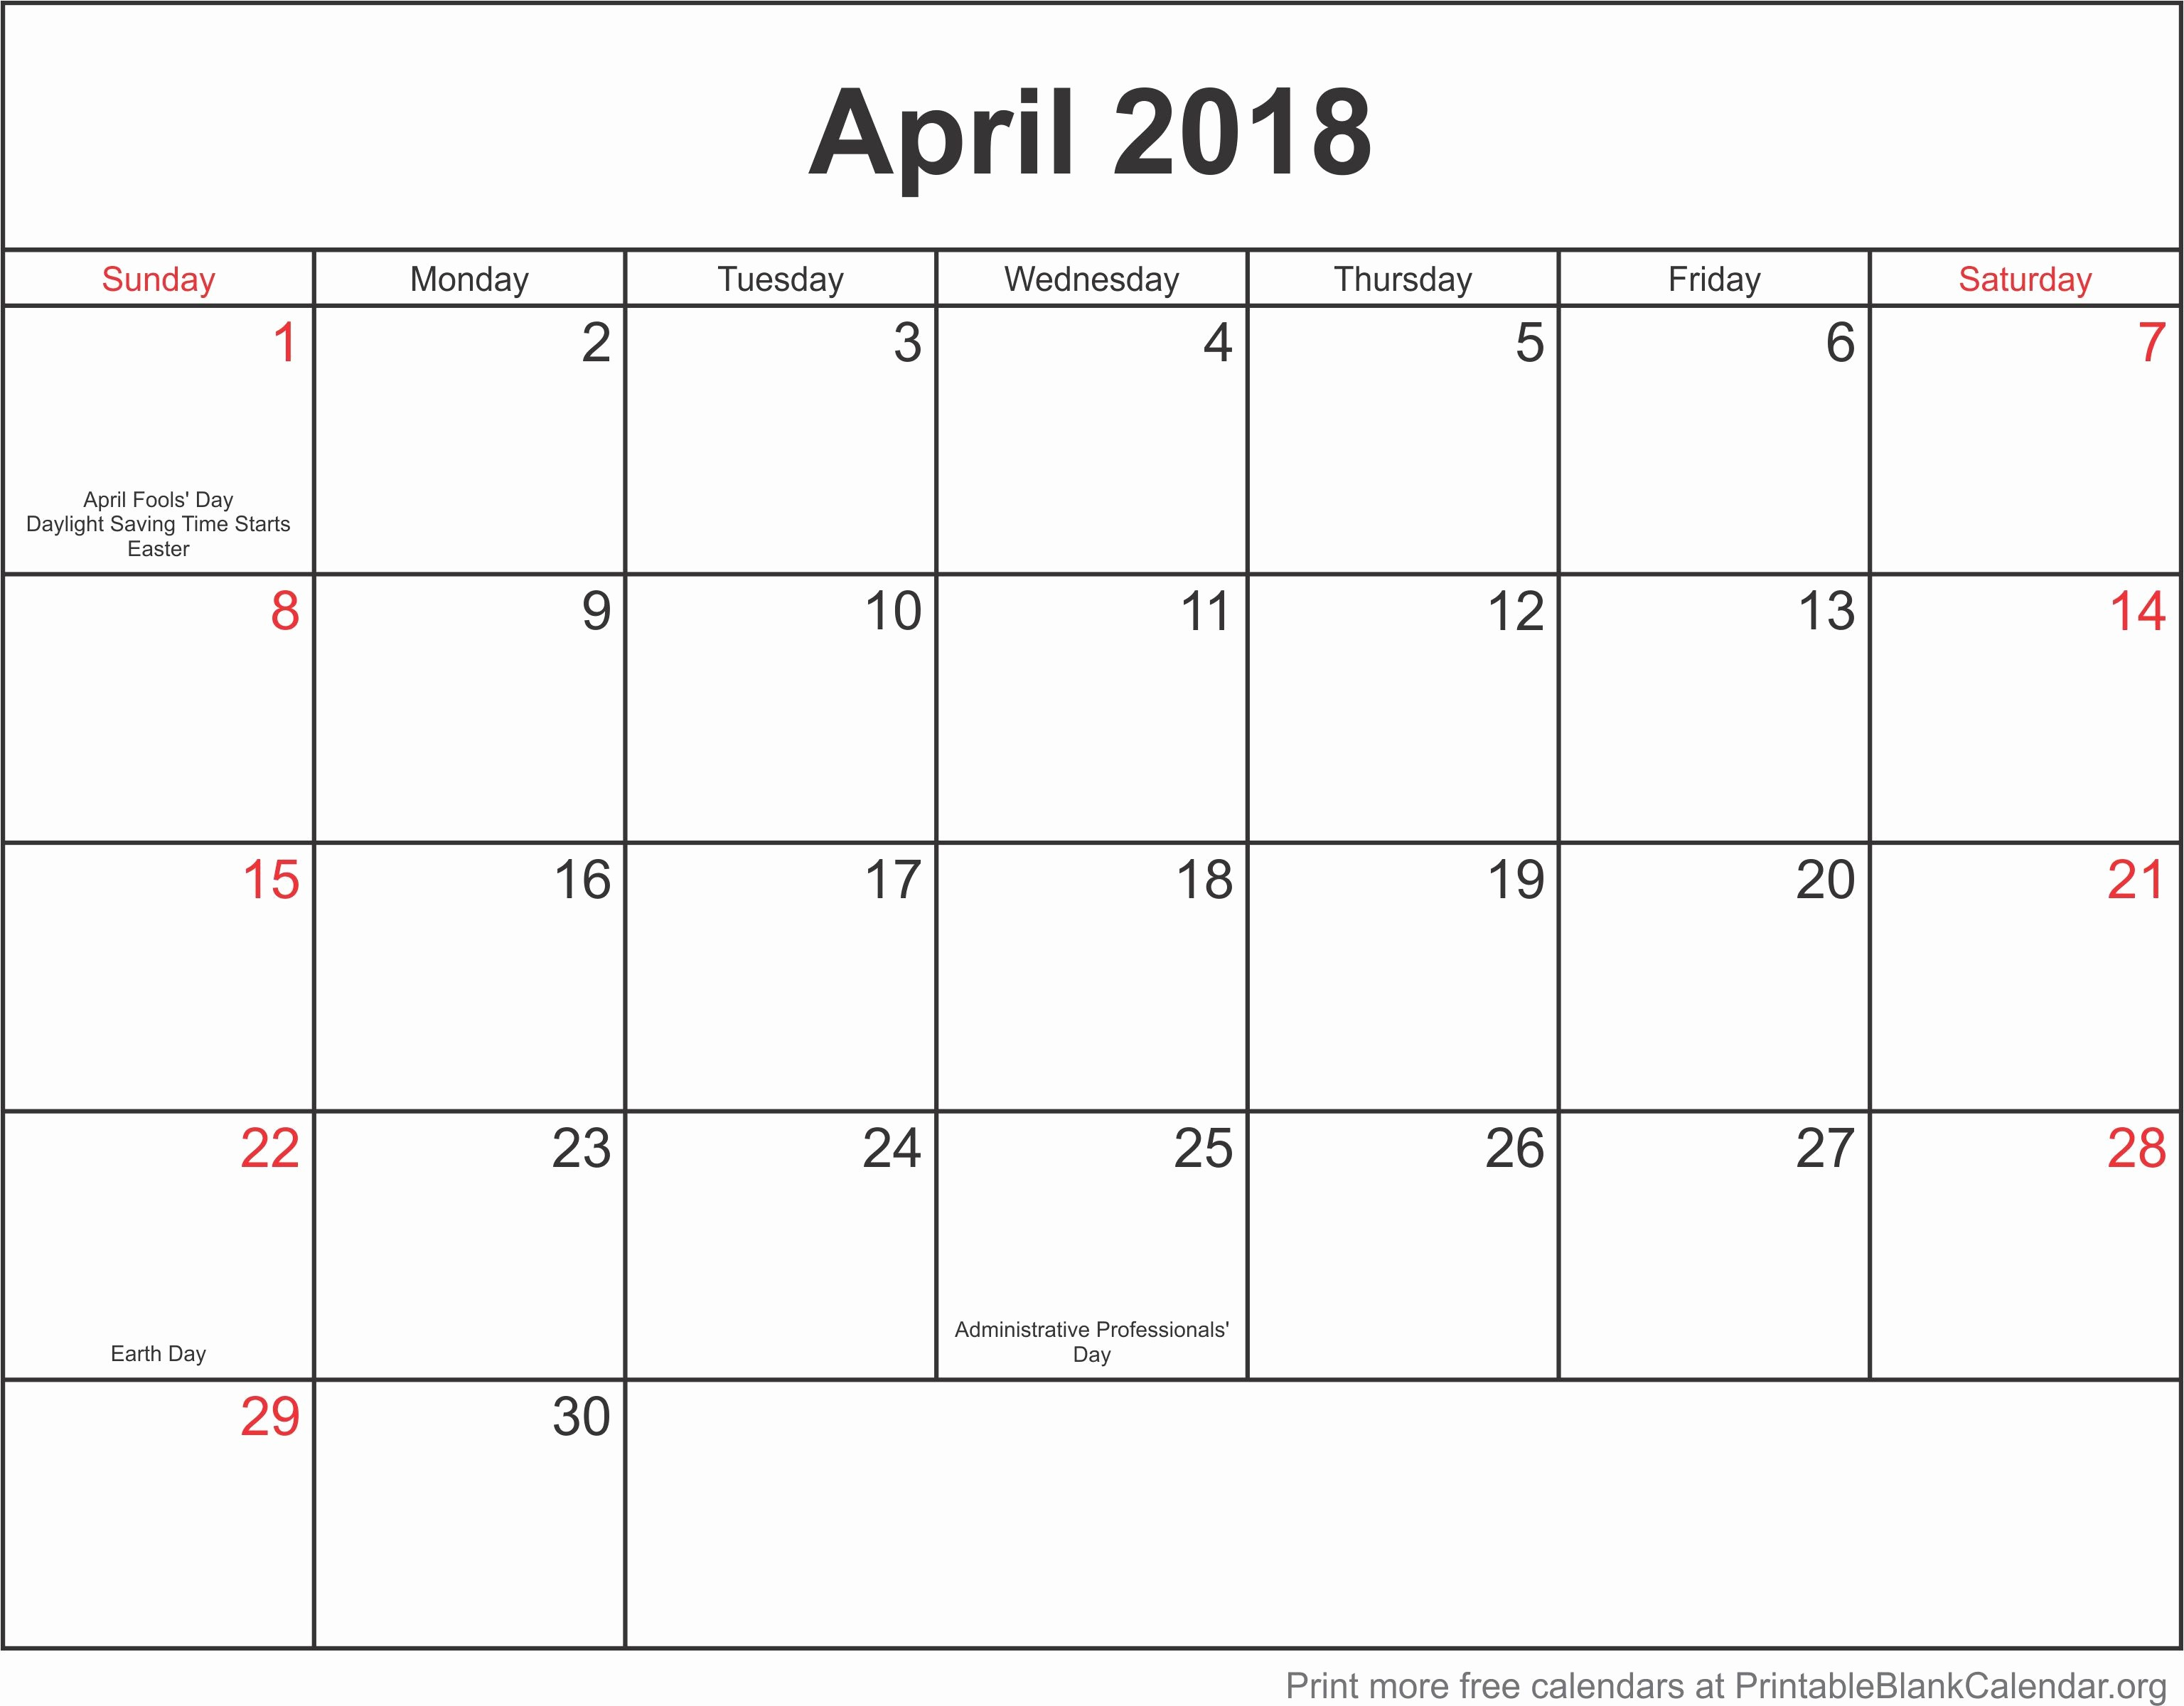 Blank April 2018 Calendar Template Inspirational Calendar Template April 2018 Printable Blank Calendar